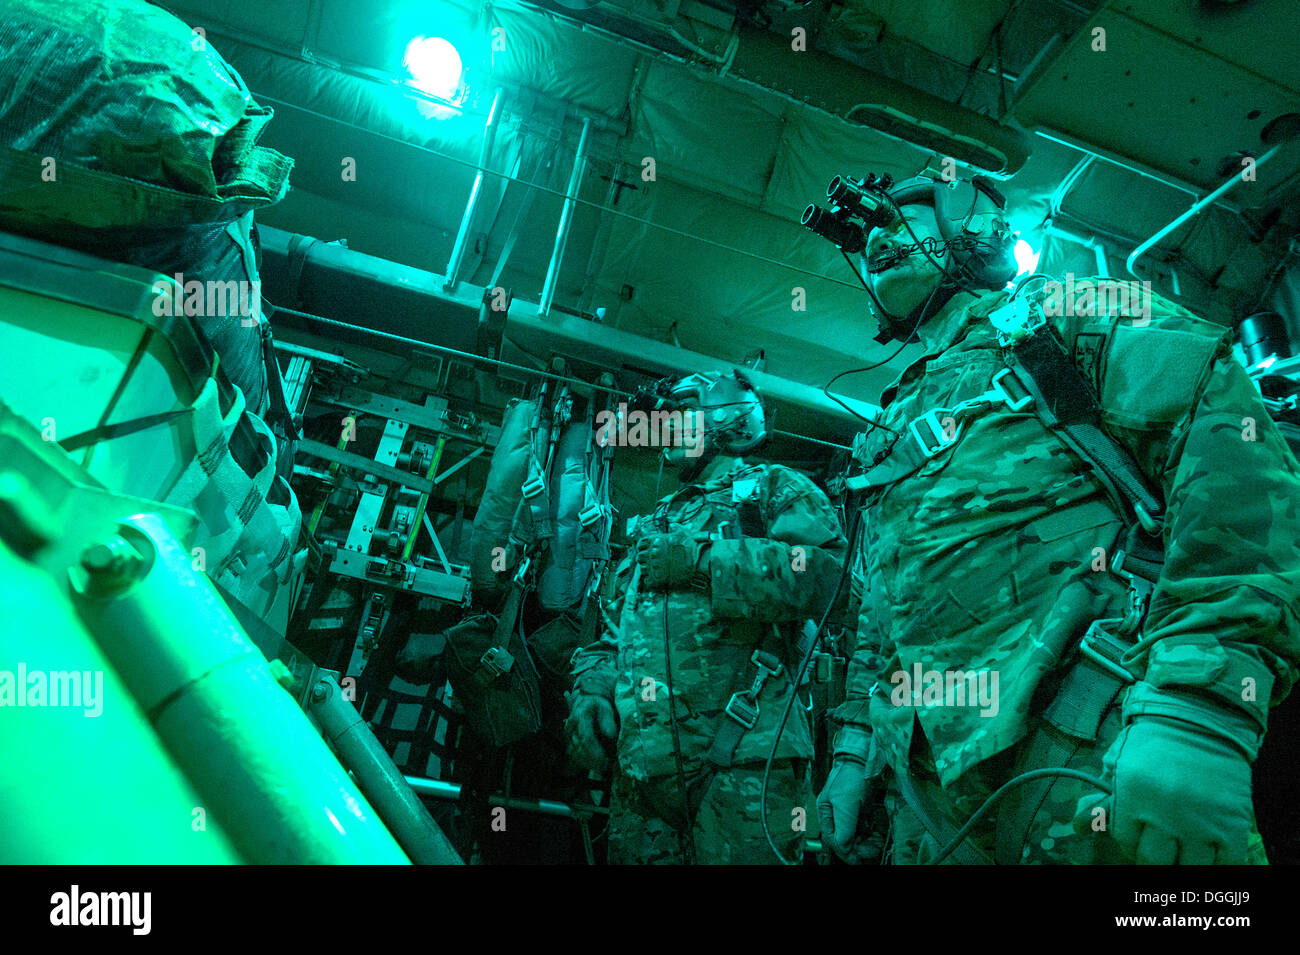 Senior Airman Larry Webster and Tech Sgt. Richard Mulhollen, 774th Expeditionary Airlift Squadron C-130H Hercules loadmasters, wait for the go-ahead to release cargo over a remote drop zone in Ghazni Province, Afghanistan Oct. 7, 2013. Webster, a Lyons, C - Stock Image